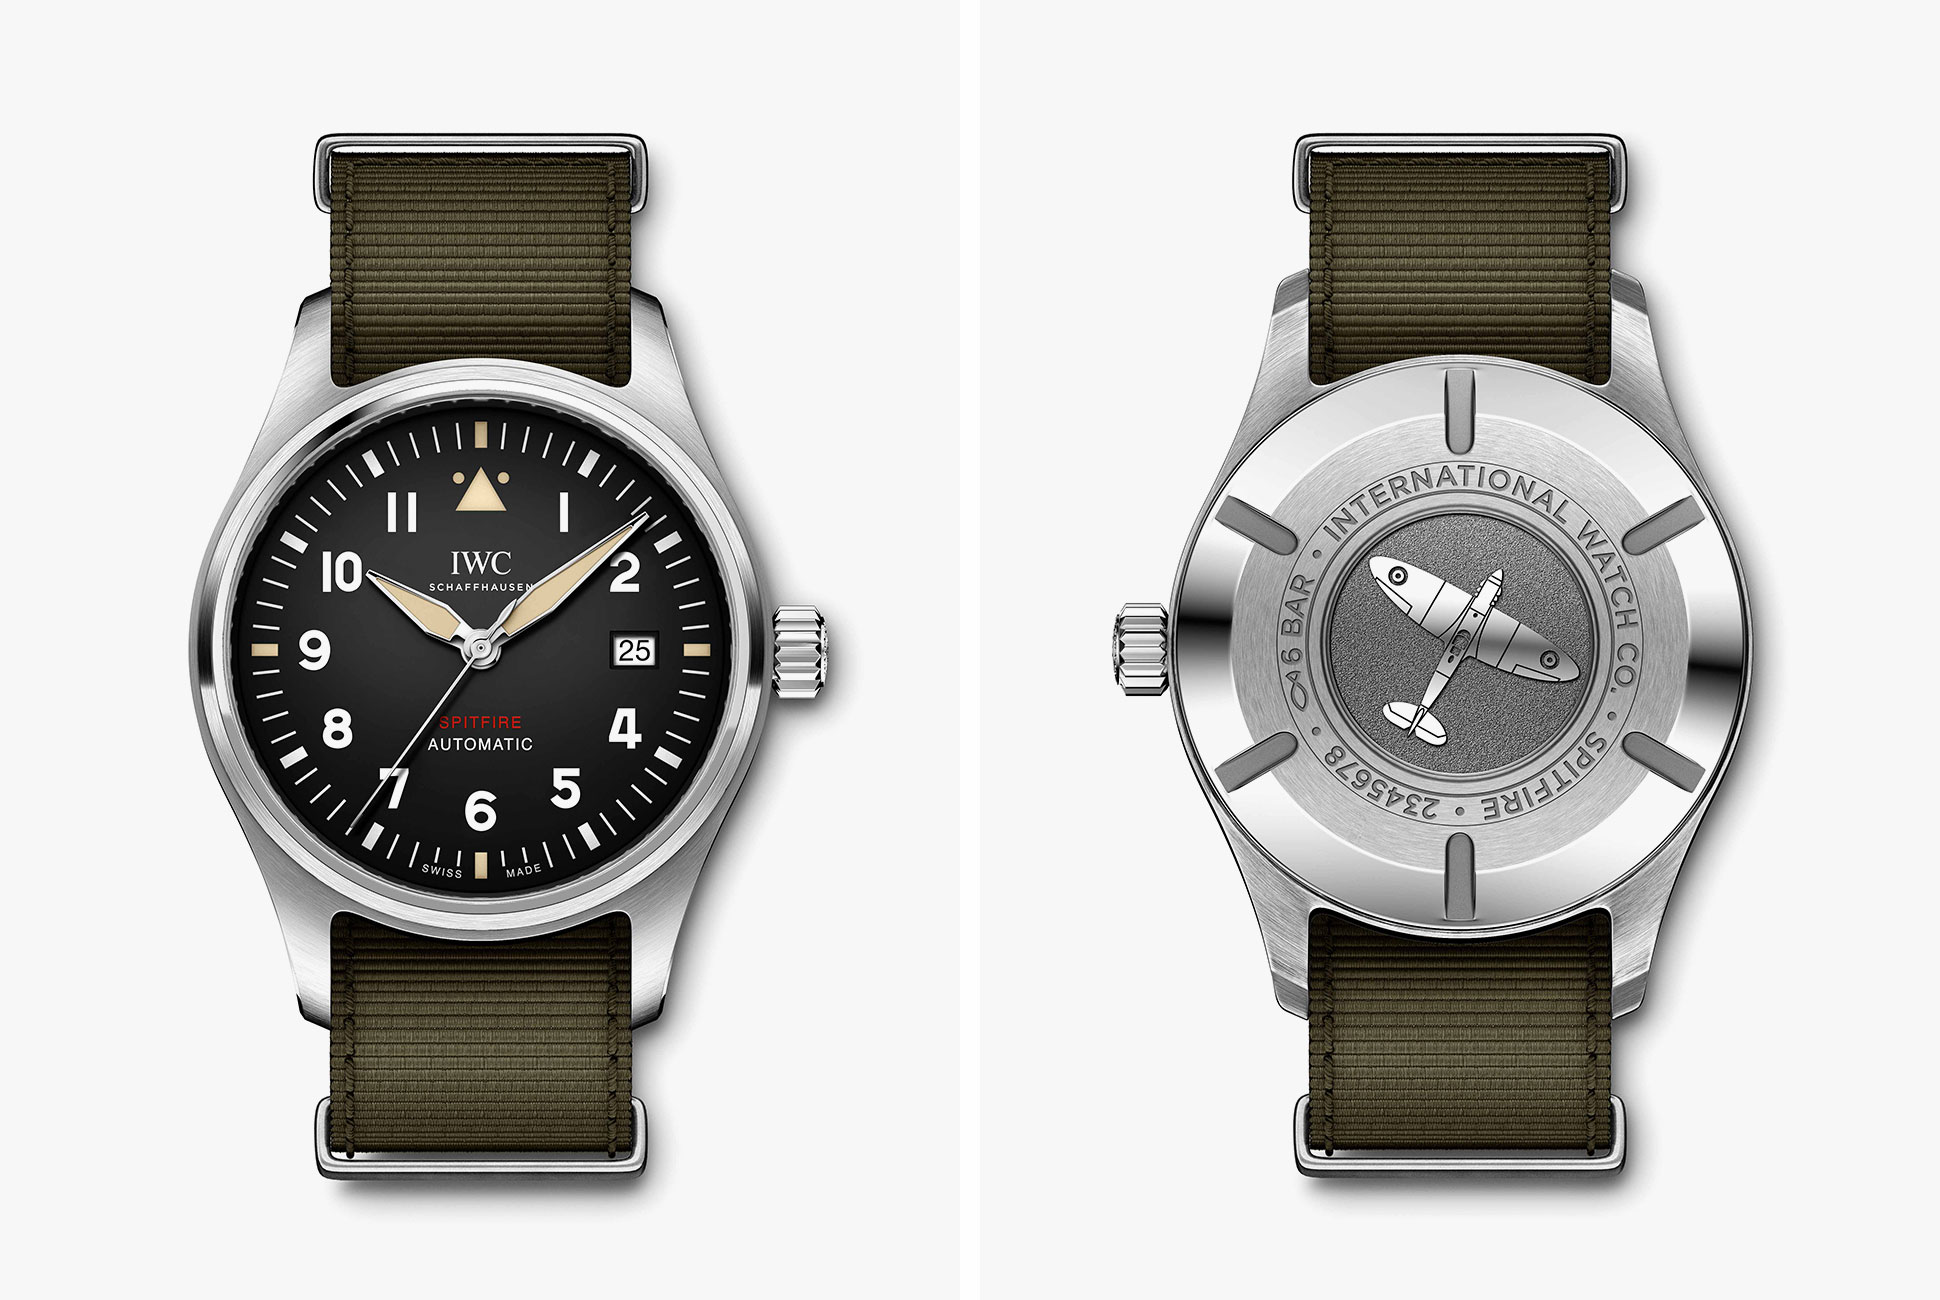 IWC 2019 Spitfire Collection looks impressive, thoughts